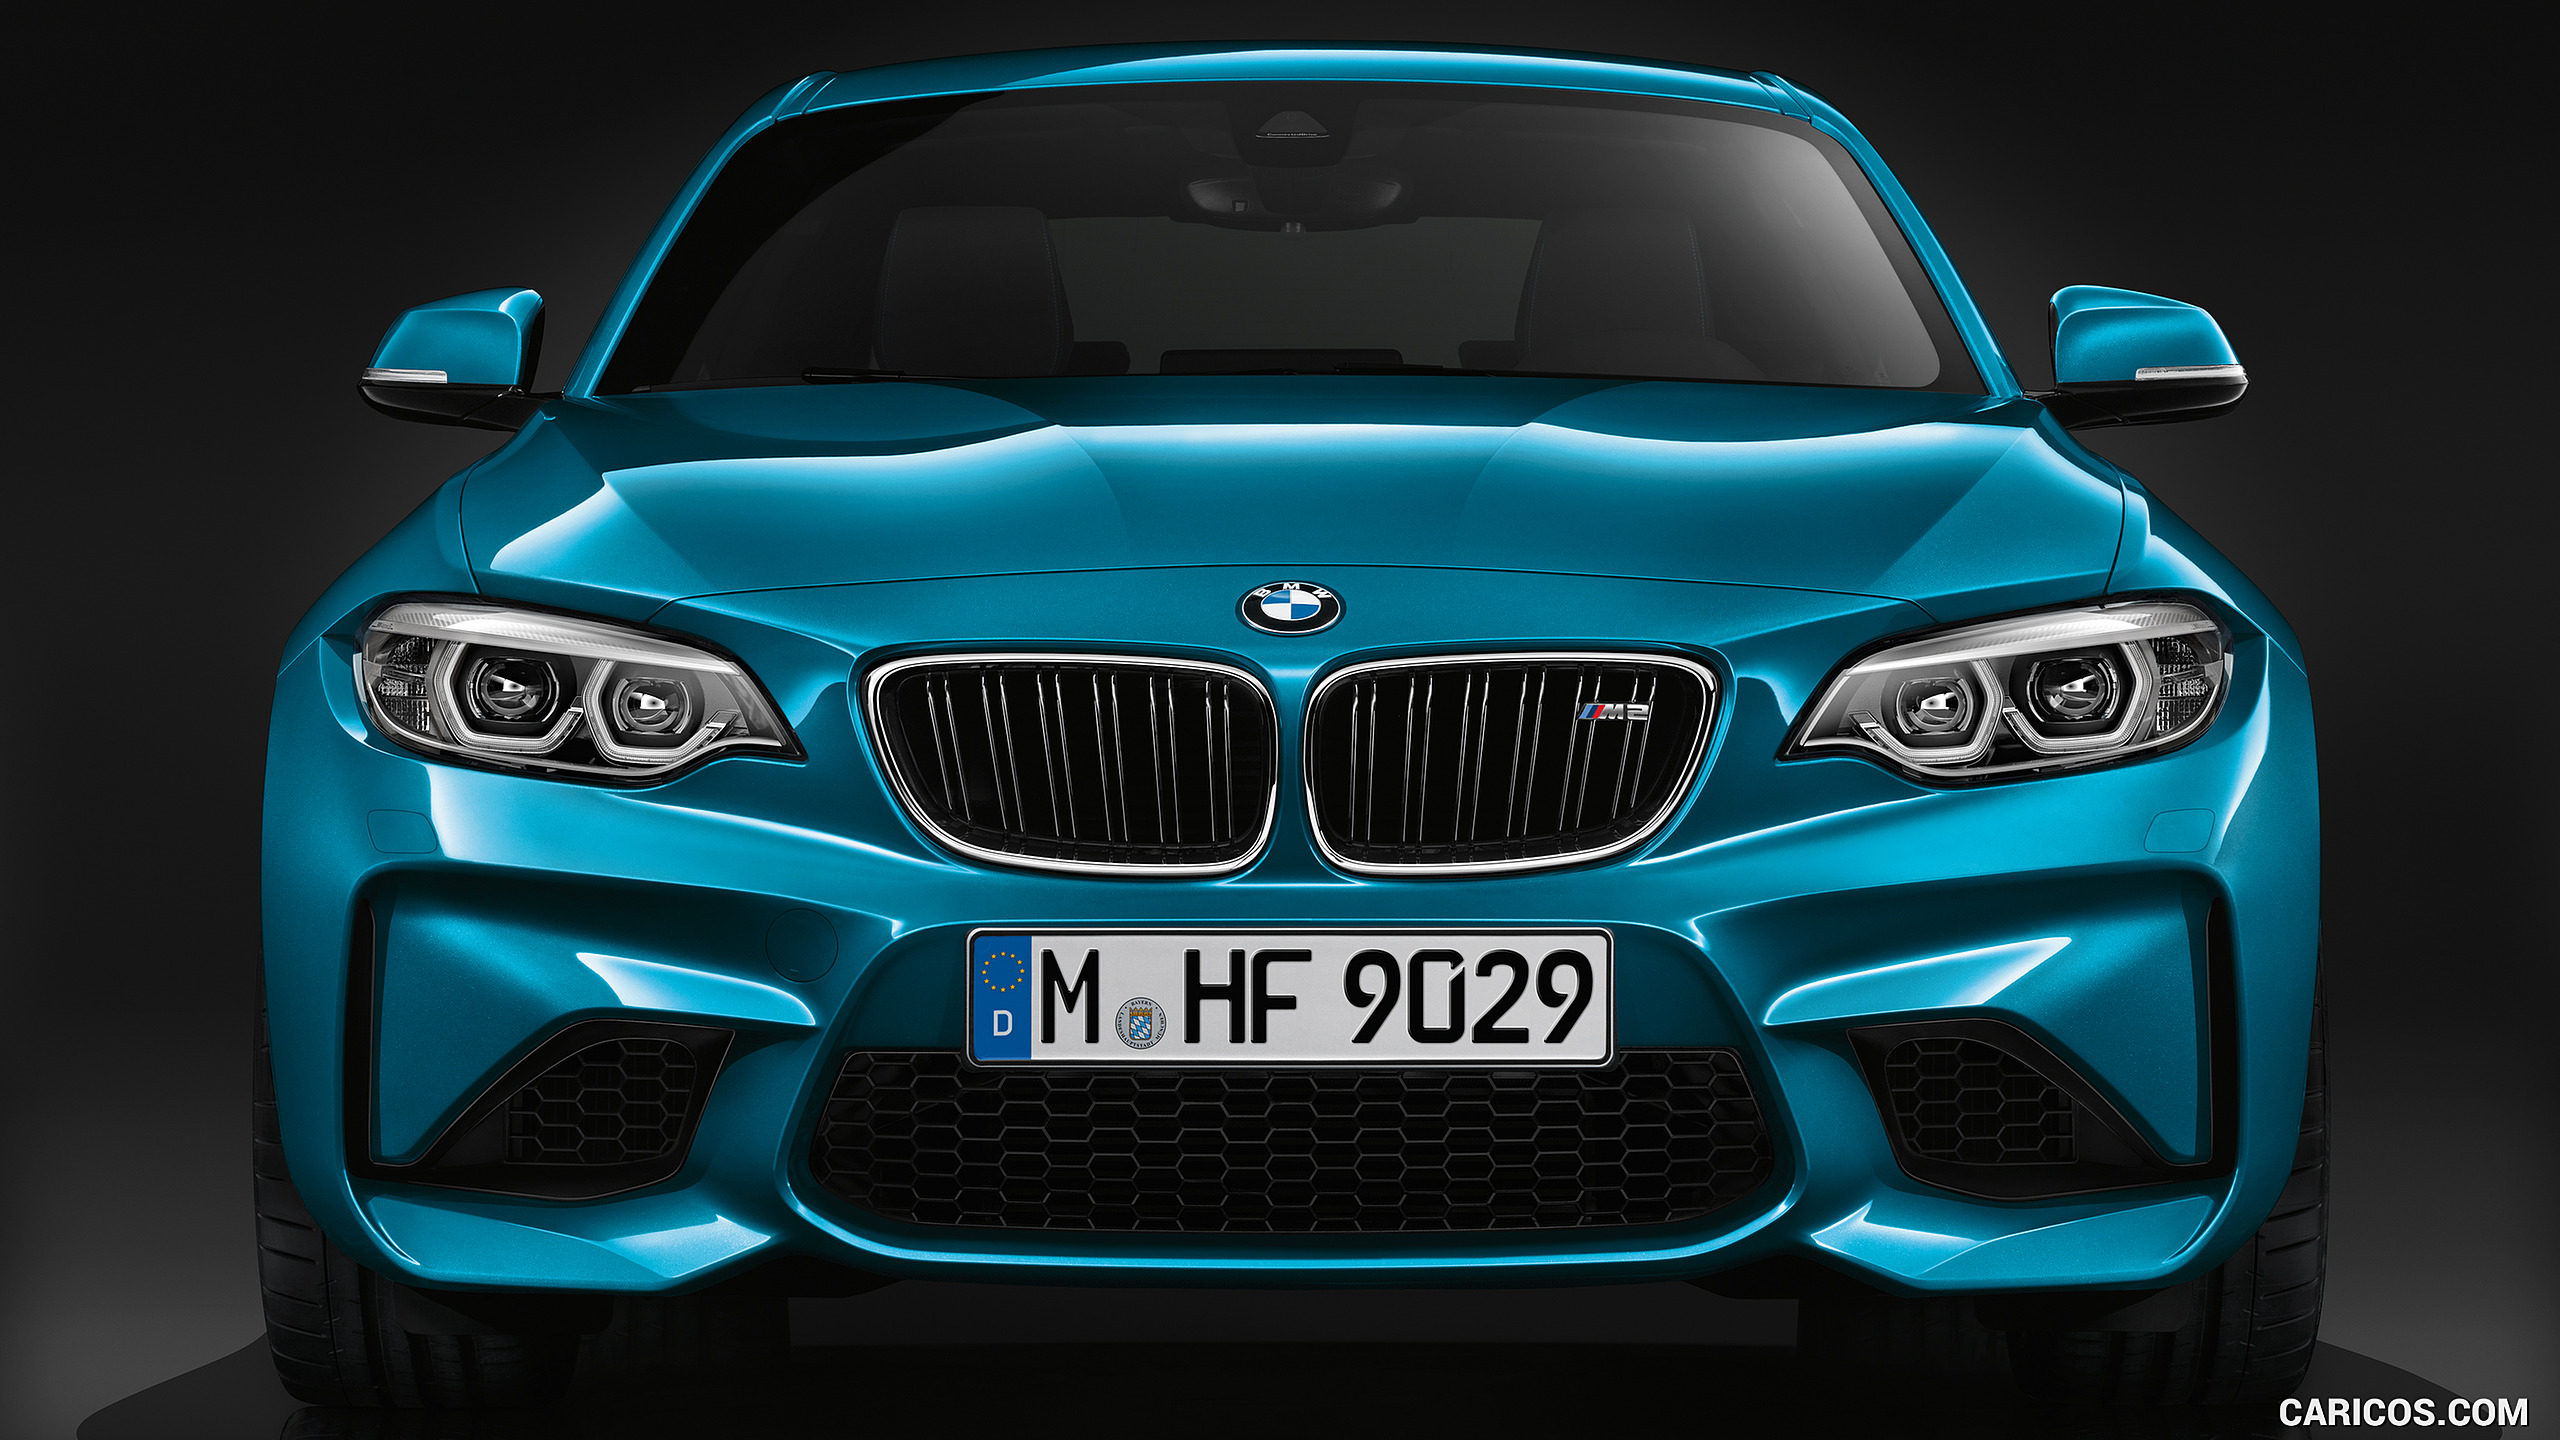 2560x1440 - BMW M2 Coupe Wallpapers 35